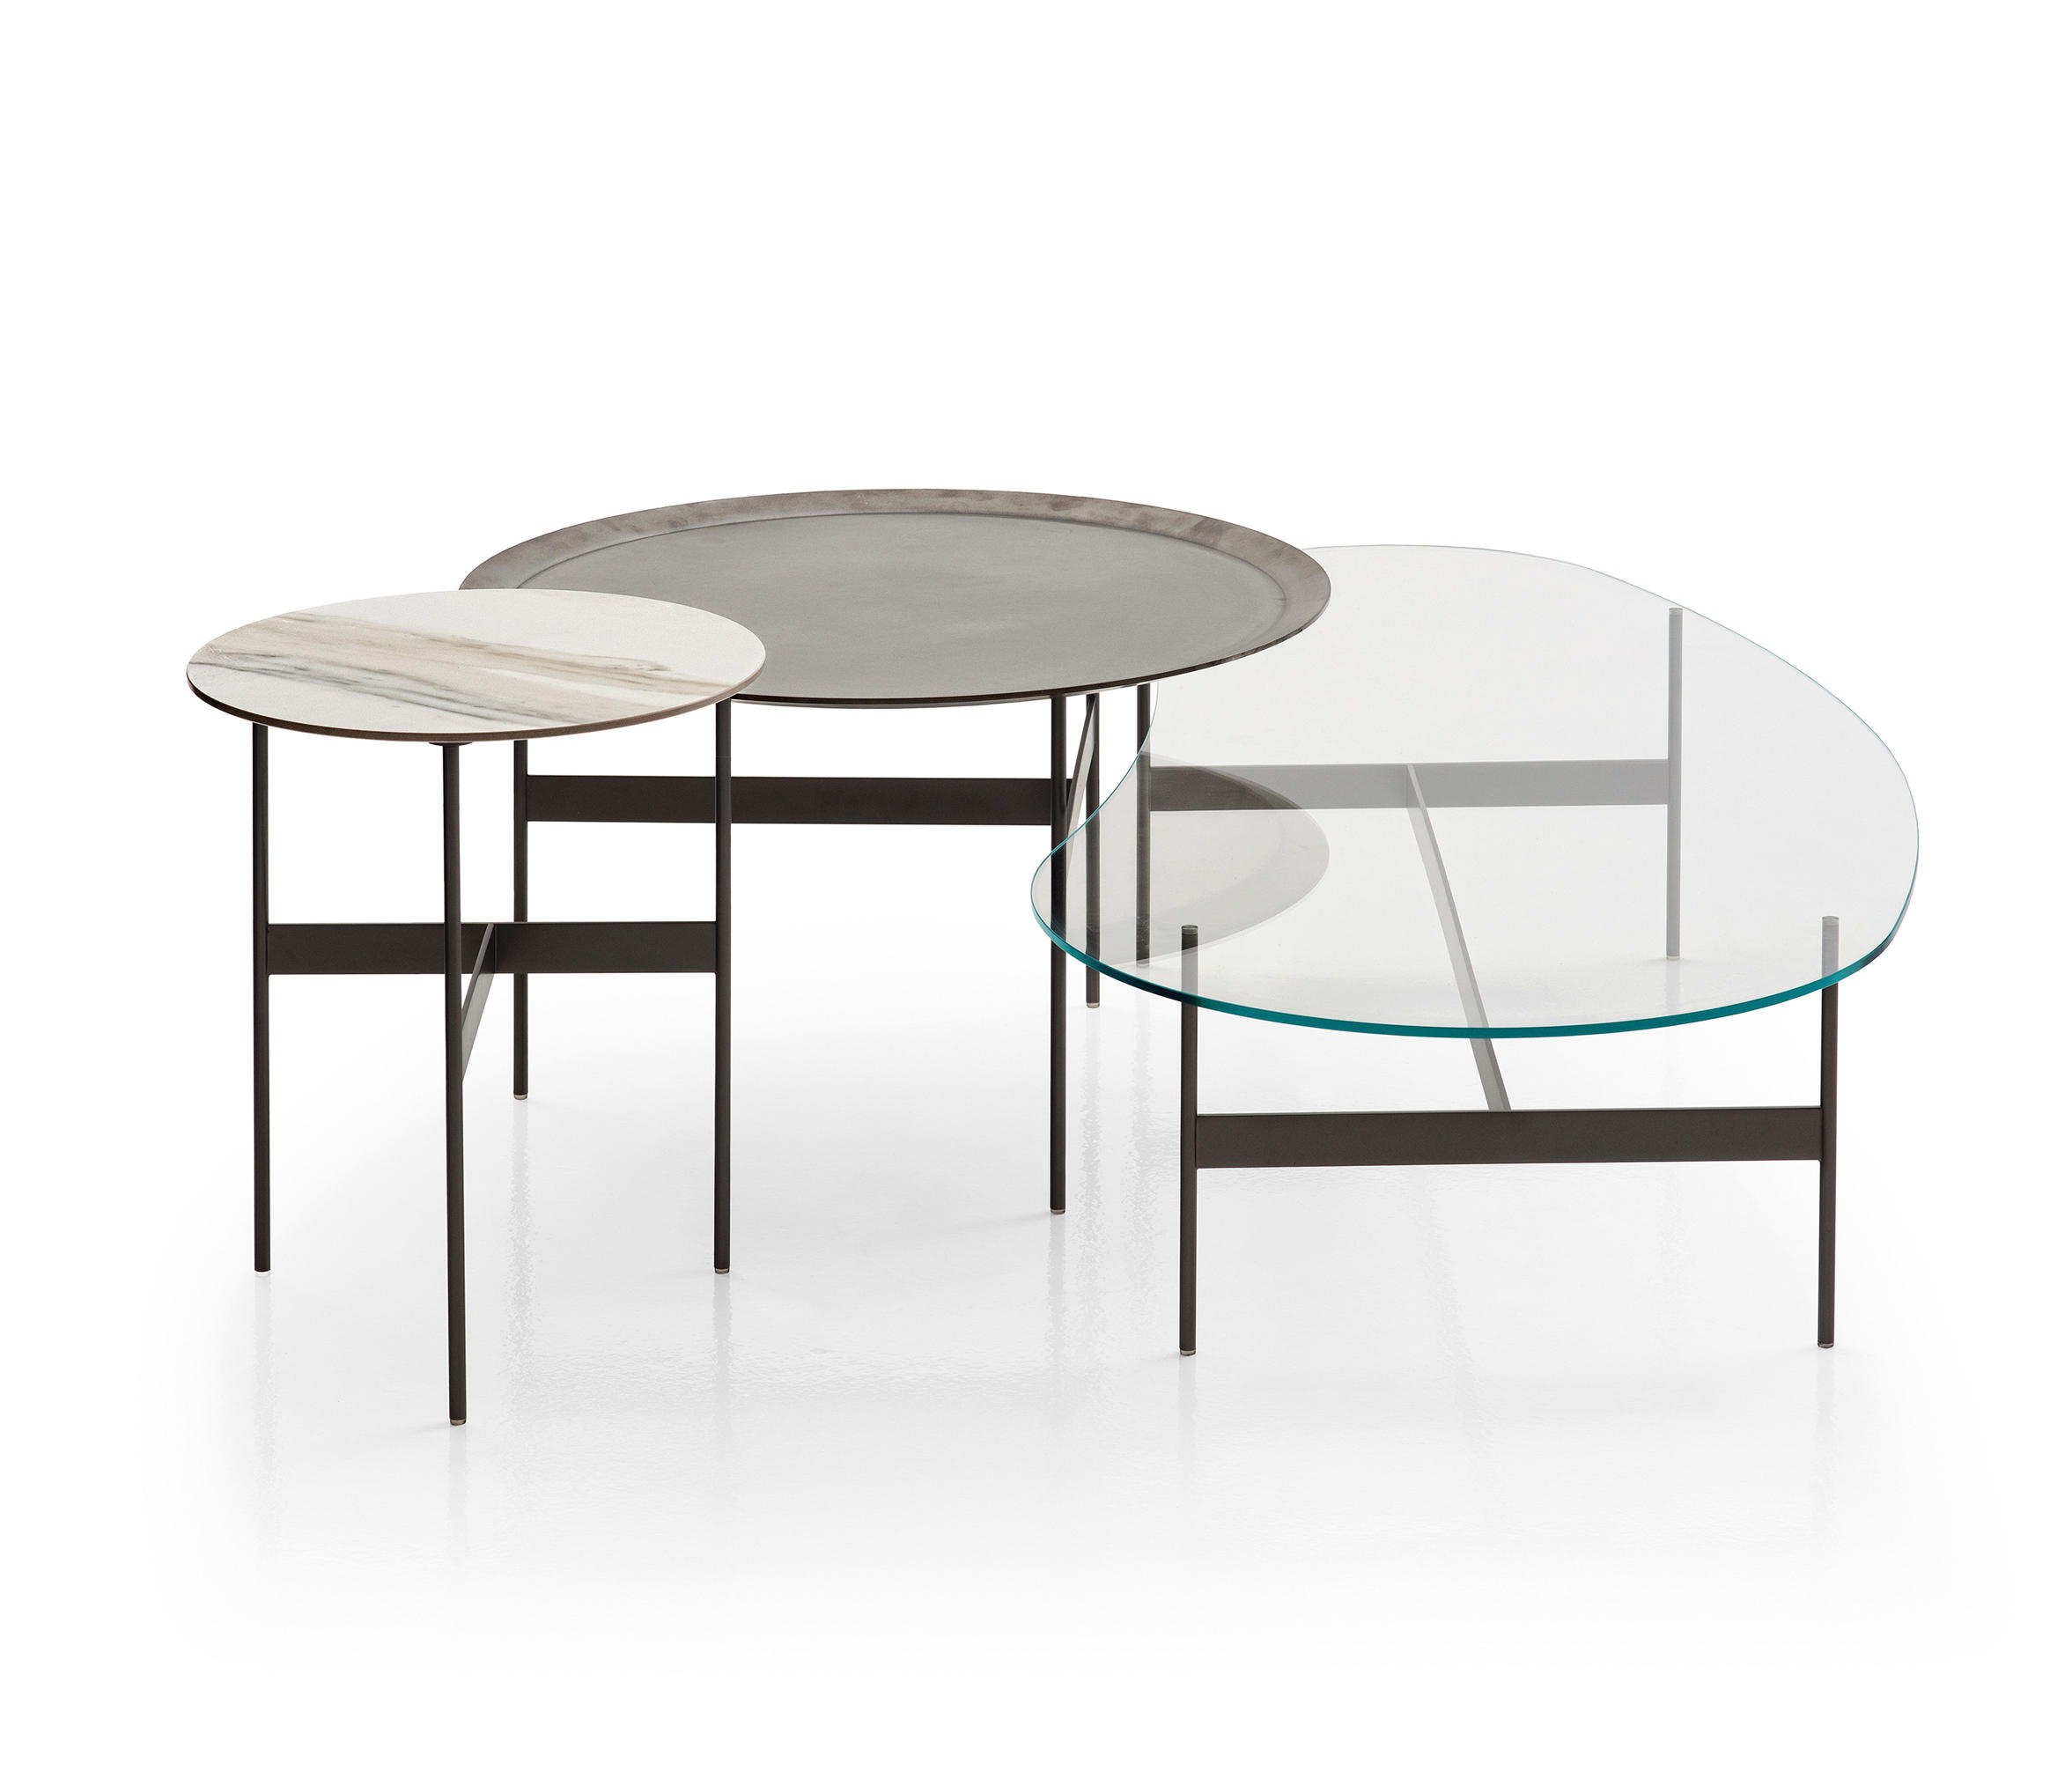 FORMICHE Side tables from B&B Italia